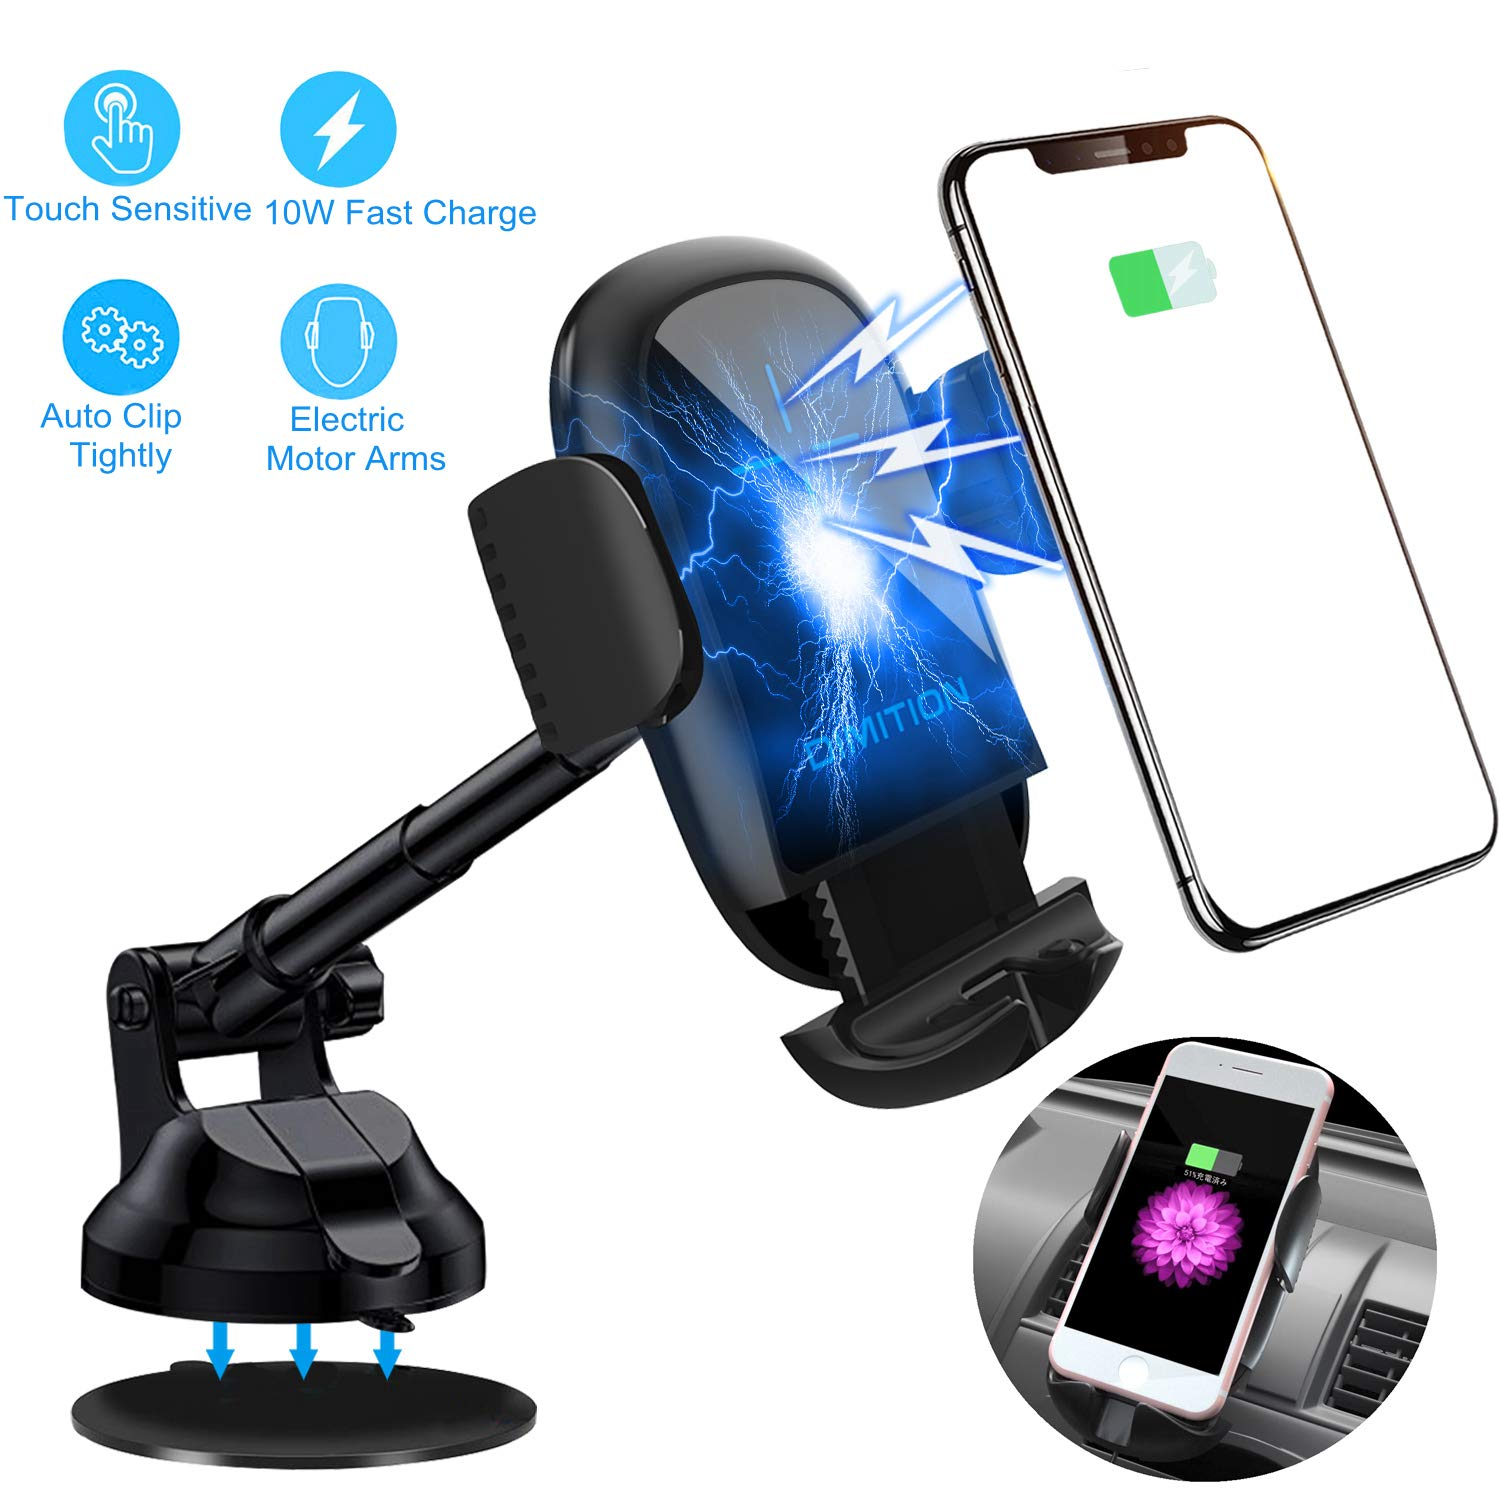 Dimi Cell Phone Holder for Car Phone Mount Qi Fast Charging Wireless Car Charger Mount Dashboard/Air Vent Phone Holder Compatible with iPhone Xs Max/XR/X/8 Plus Samsung Galaxy S10e/S10+/S9/S9+/Note 9